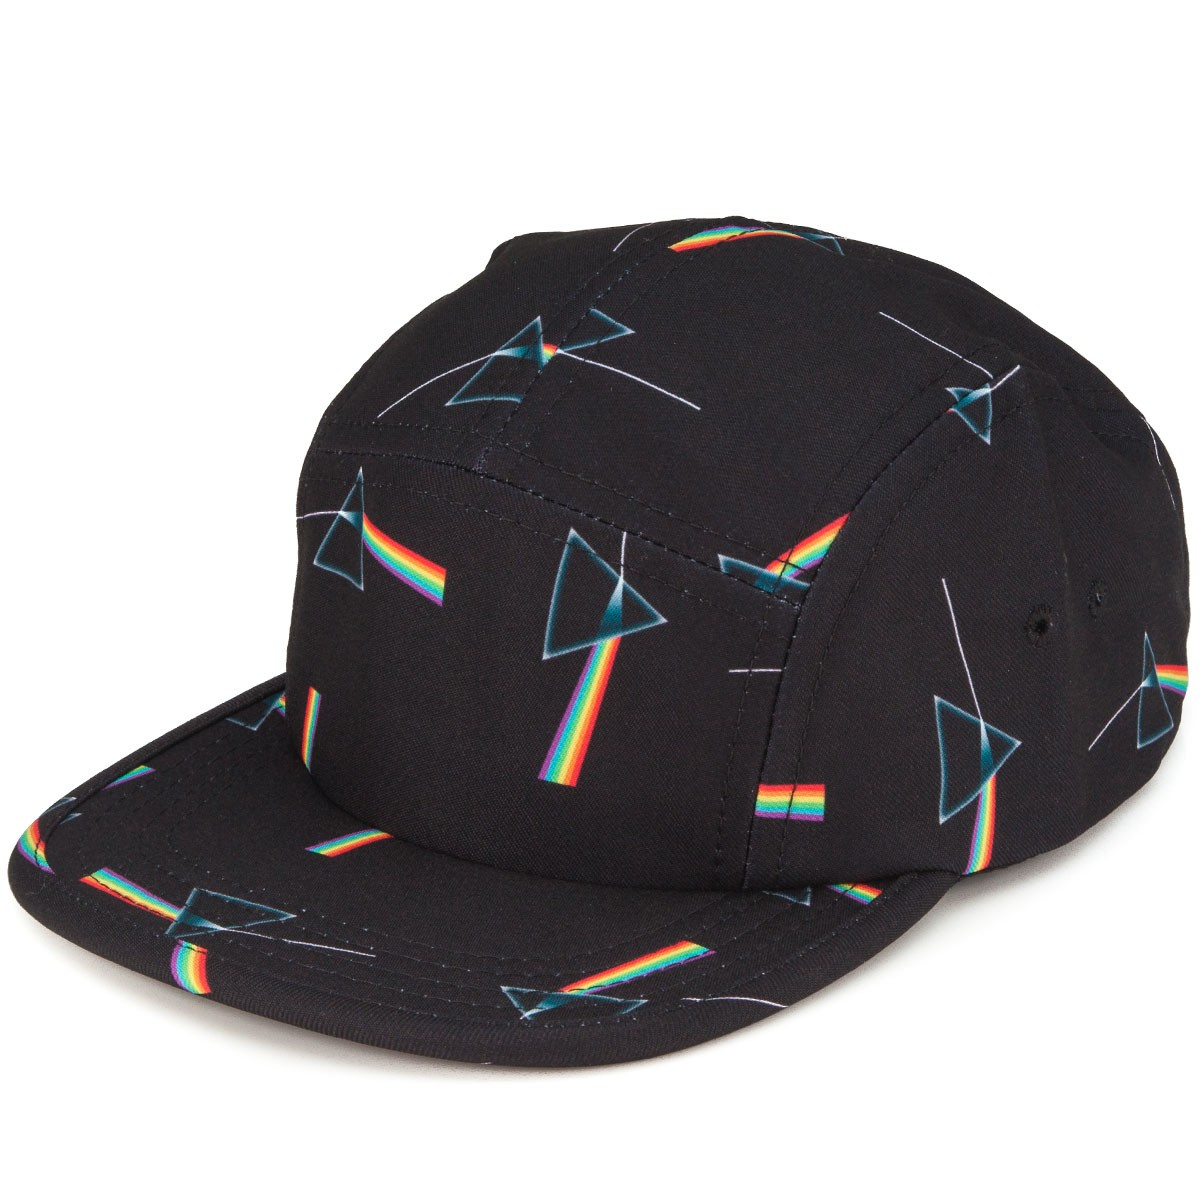 a28f5951da3 Habitat Darkside Of The Moon Hat - Black